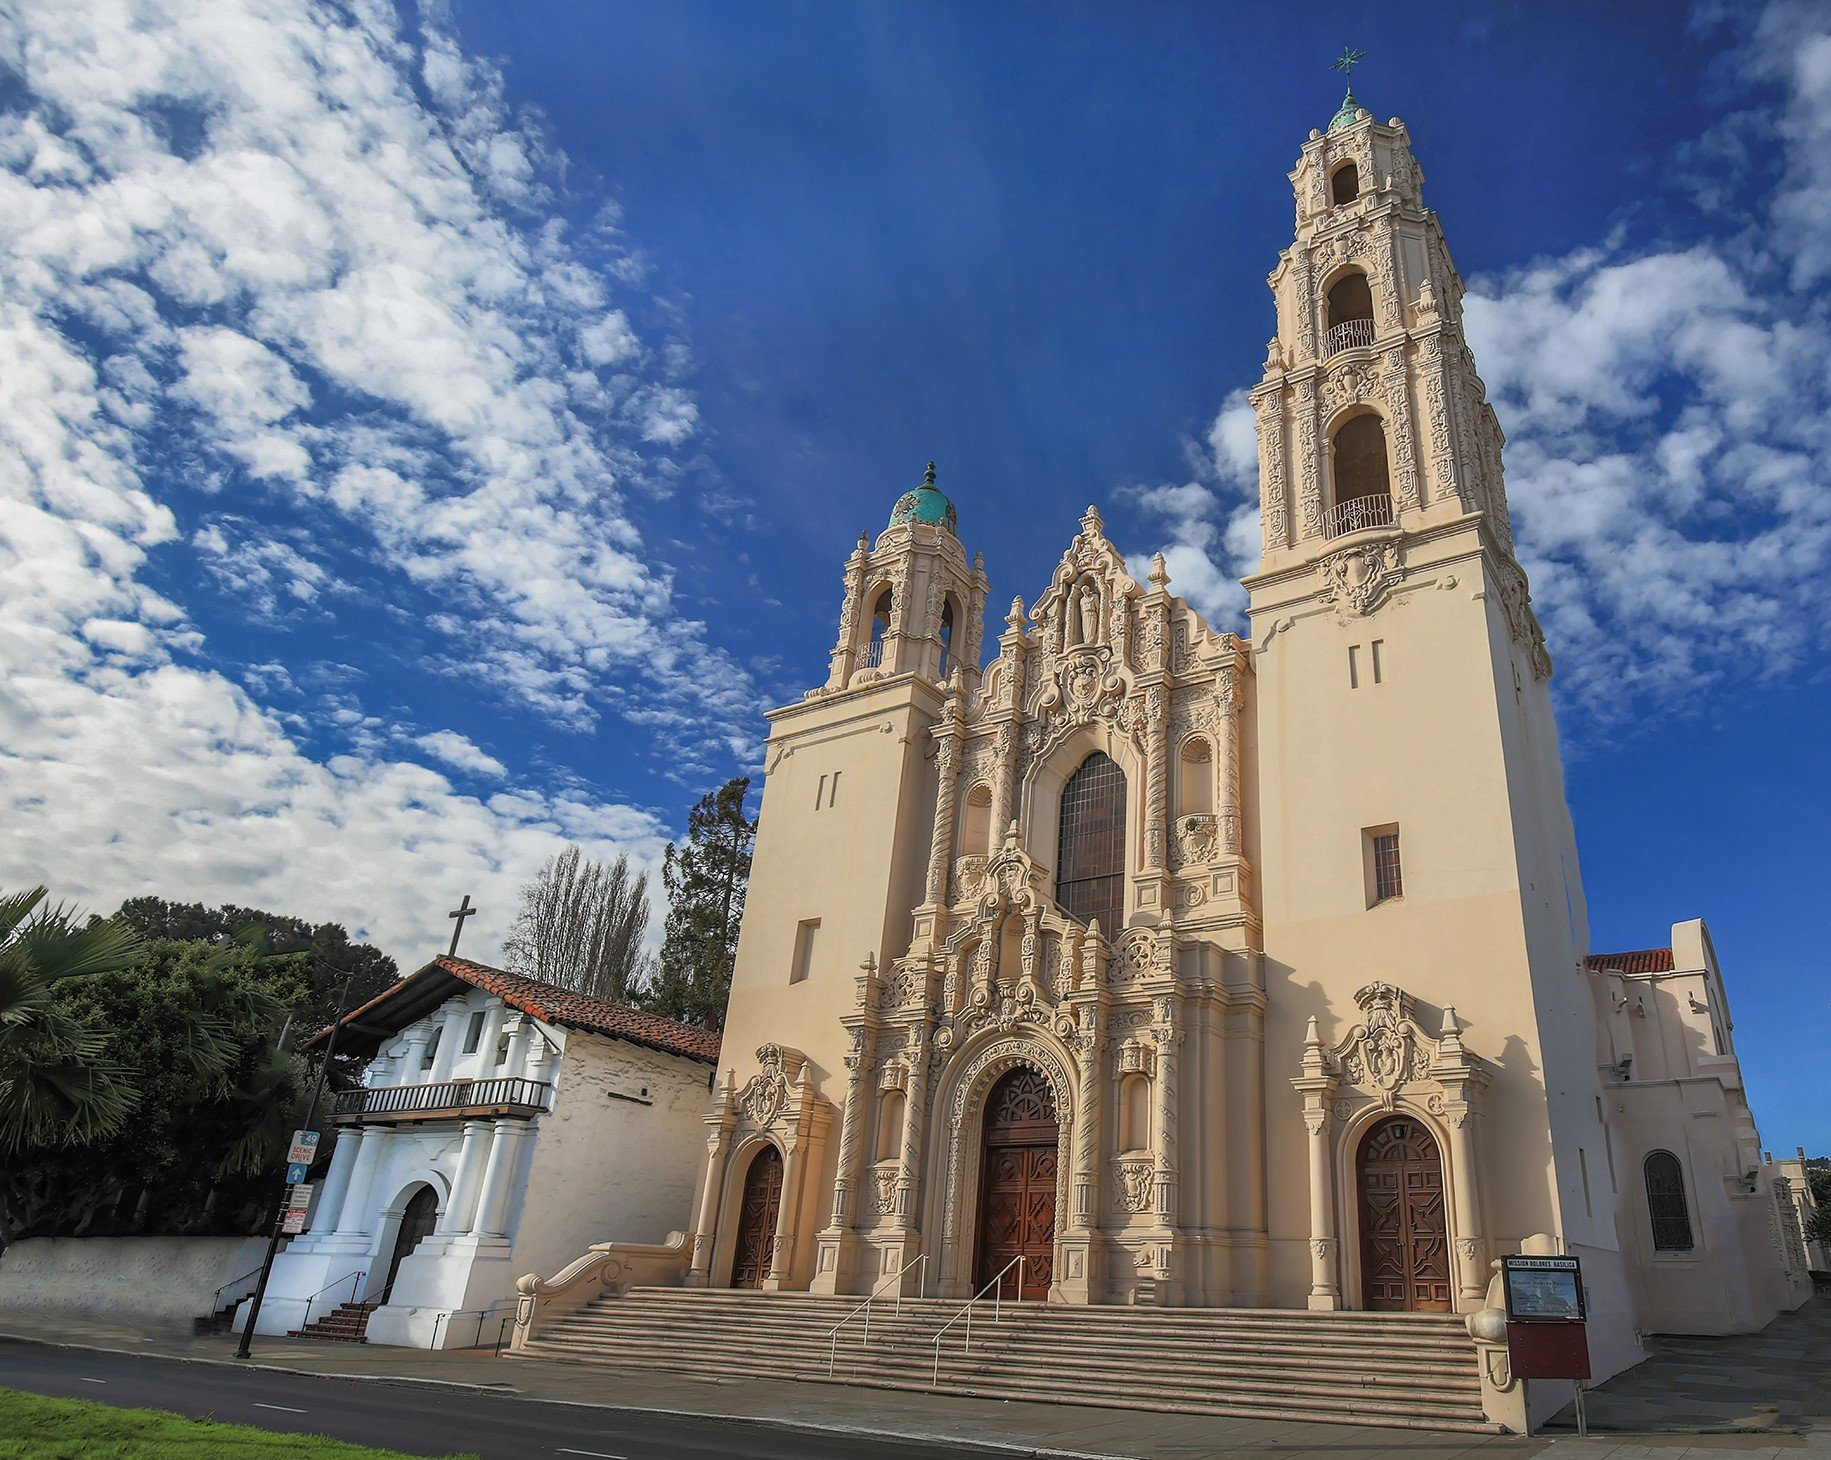 A new basilica built in 1918 dwarfs the original Mission chapel. Nonetheless, the original structure has stood the test of time, having weathered many earthquakes and fires.